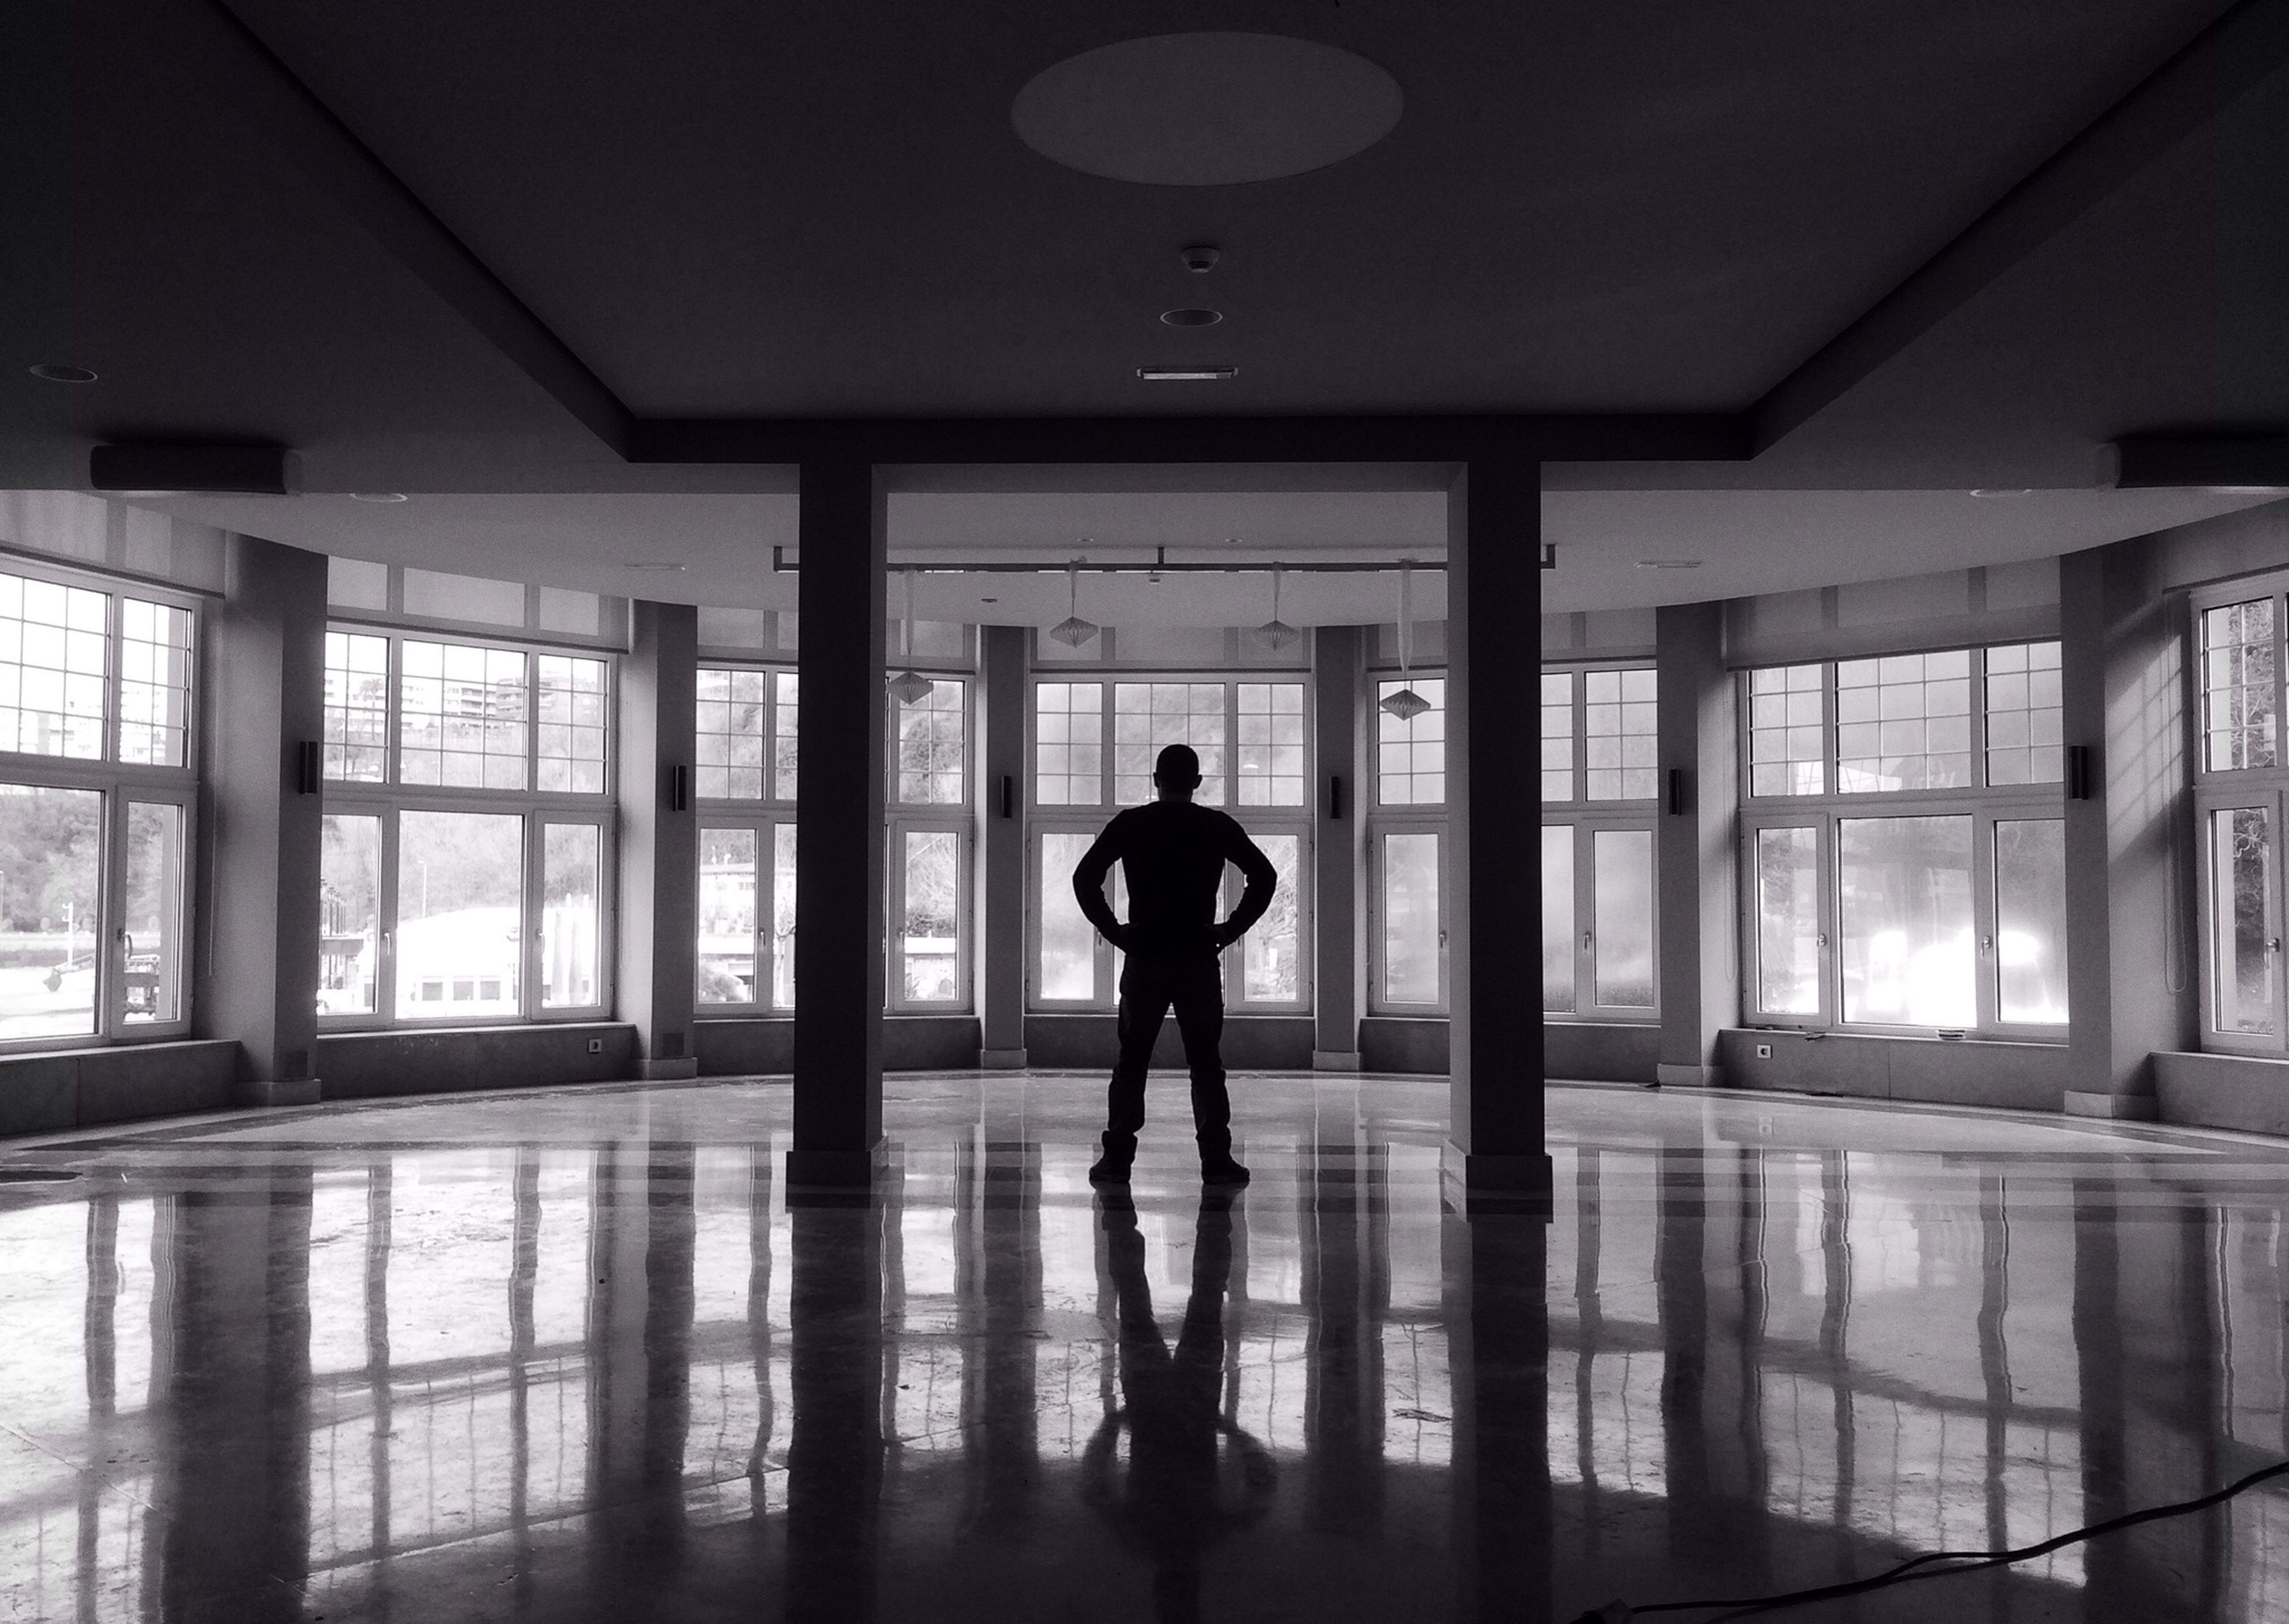 indoors, architecture, lifestyles, window, built structure, standing, full length, reflection, person, corridor, ceiling, leisure activity, flooring, men, glass - material, silhouette, rear view, walking